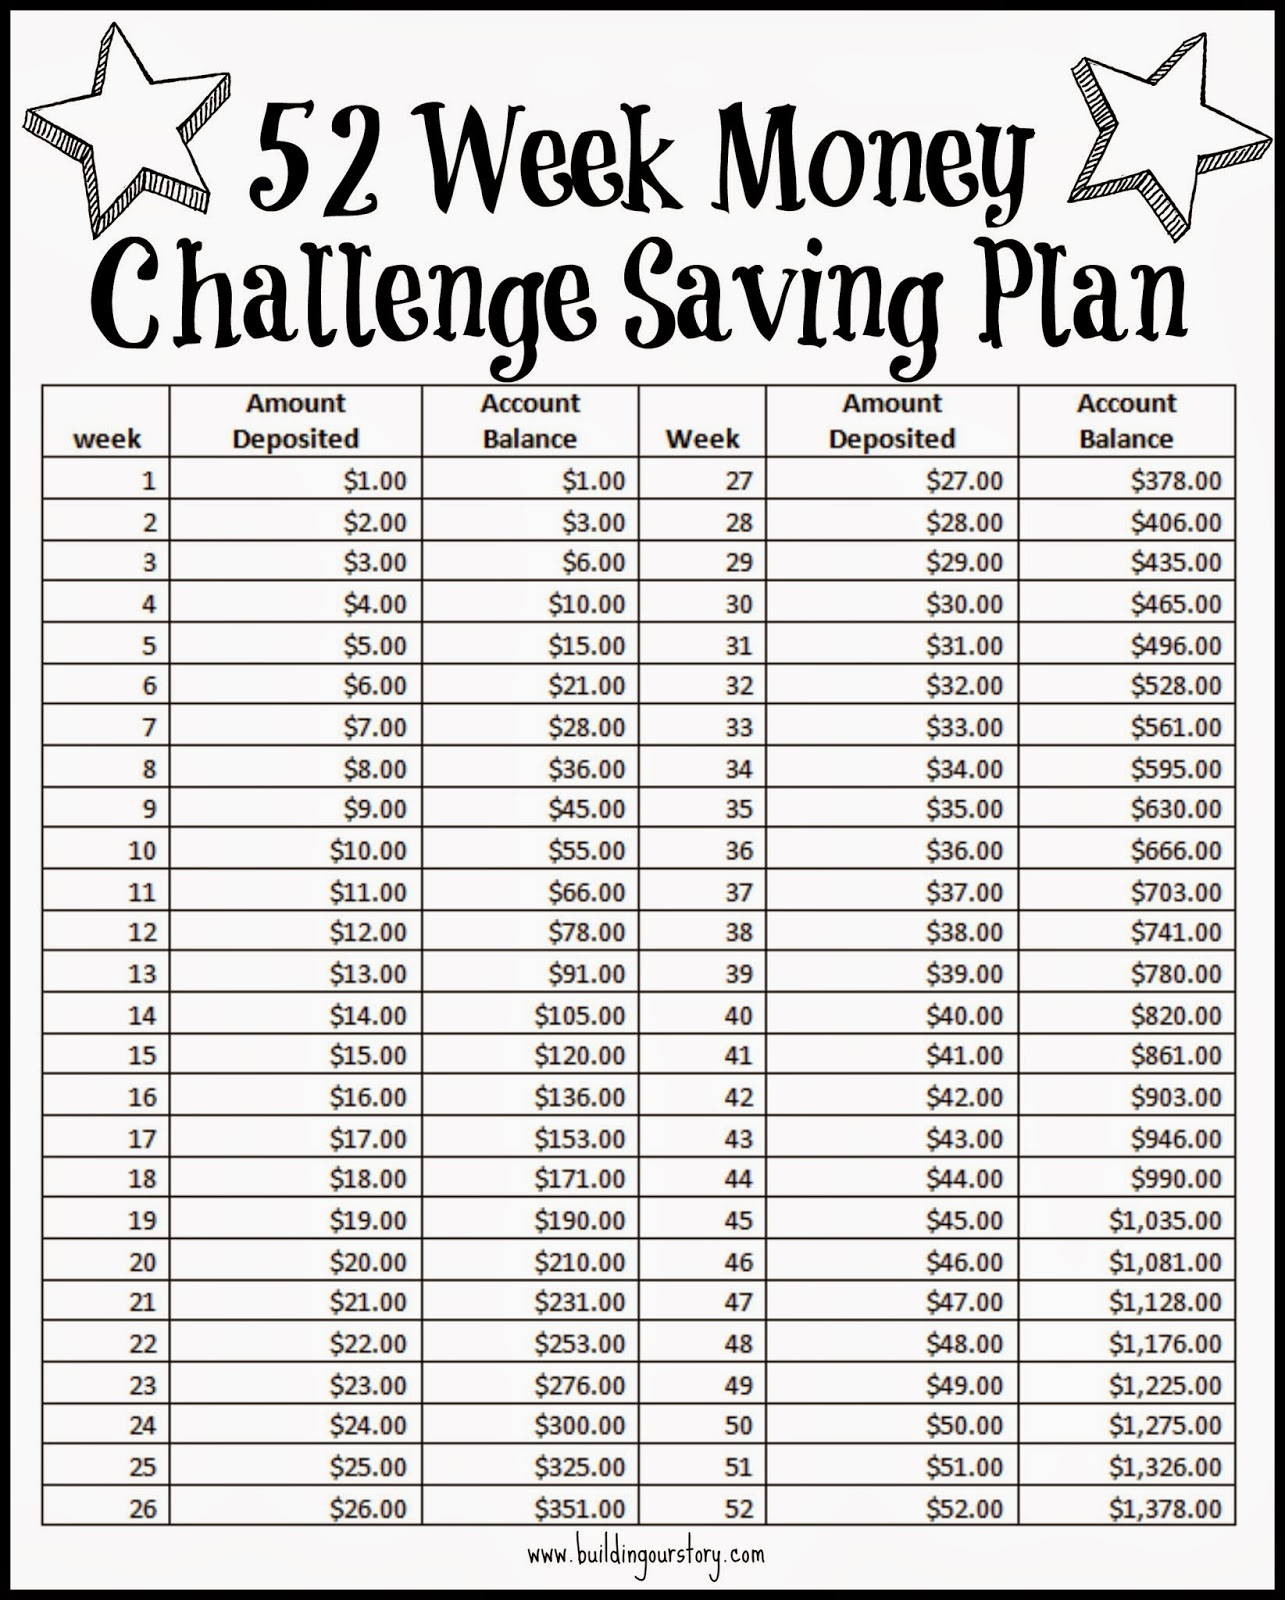 Get 52 Week Money Challenge Chart Printable Here at Uverse - Uverse